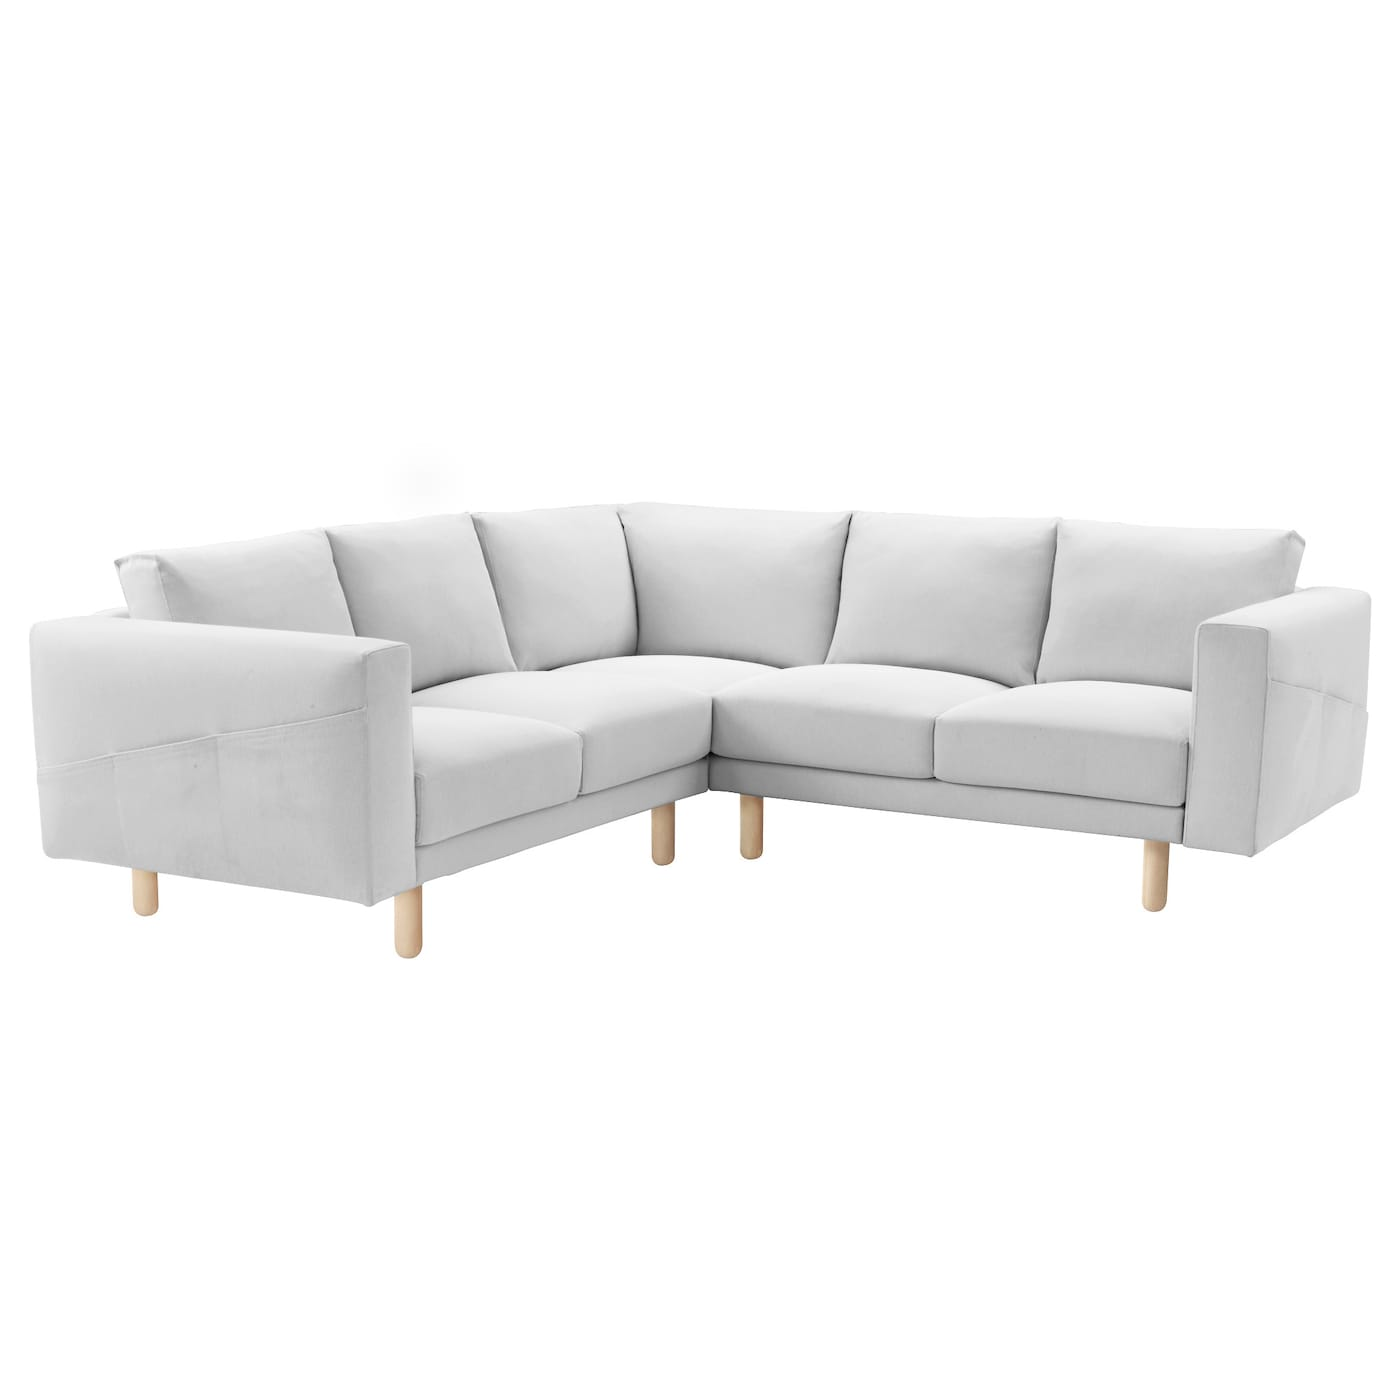 Ecksofa ikea  Free try out of NeoWall Sofa from Living Divani in 3D, VR and AR